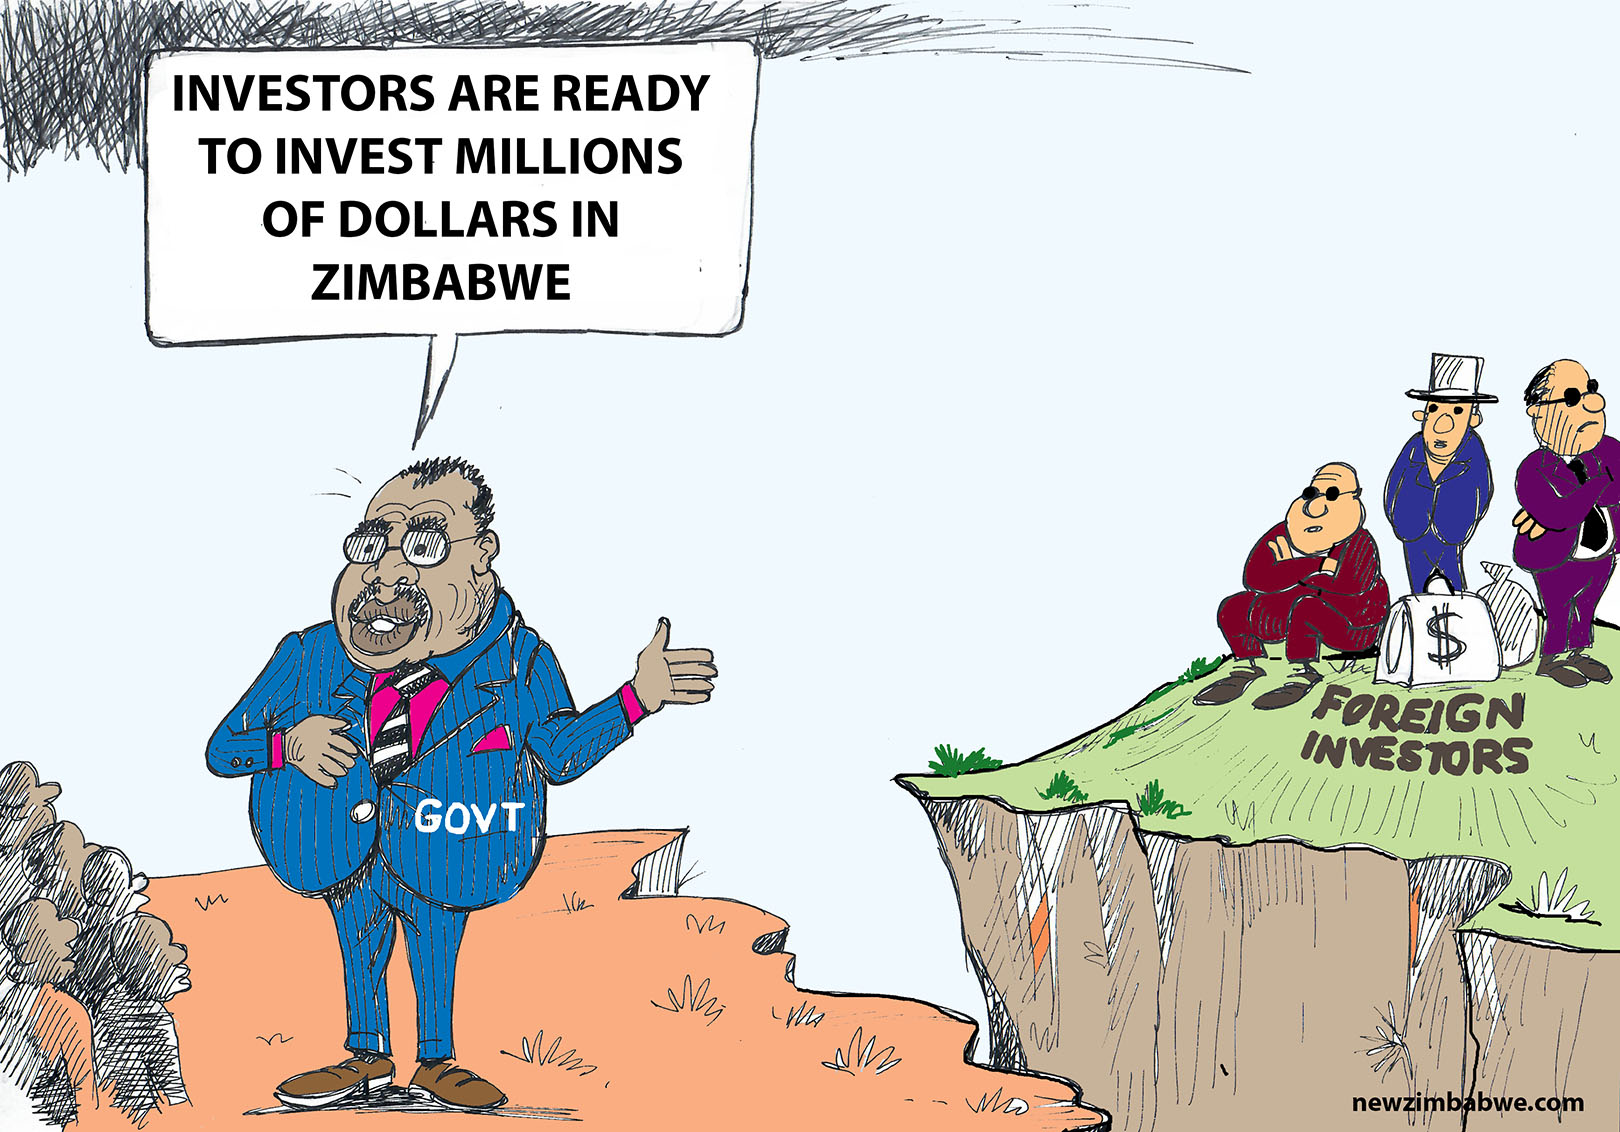 Investors have confidence in Zim